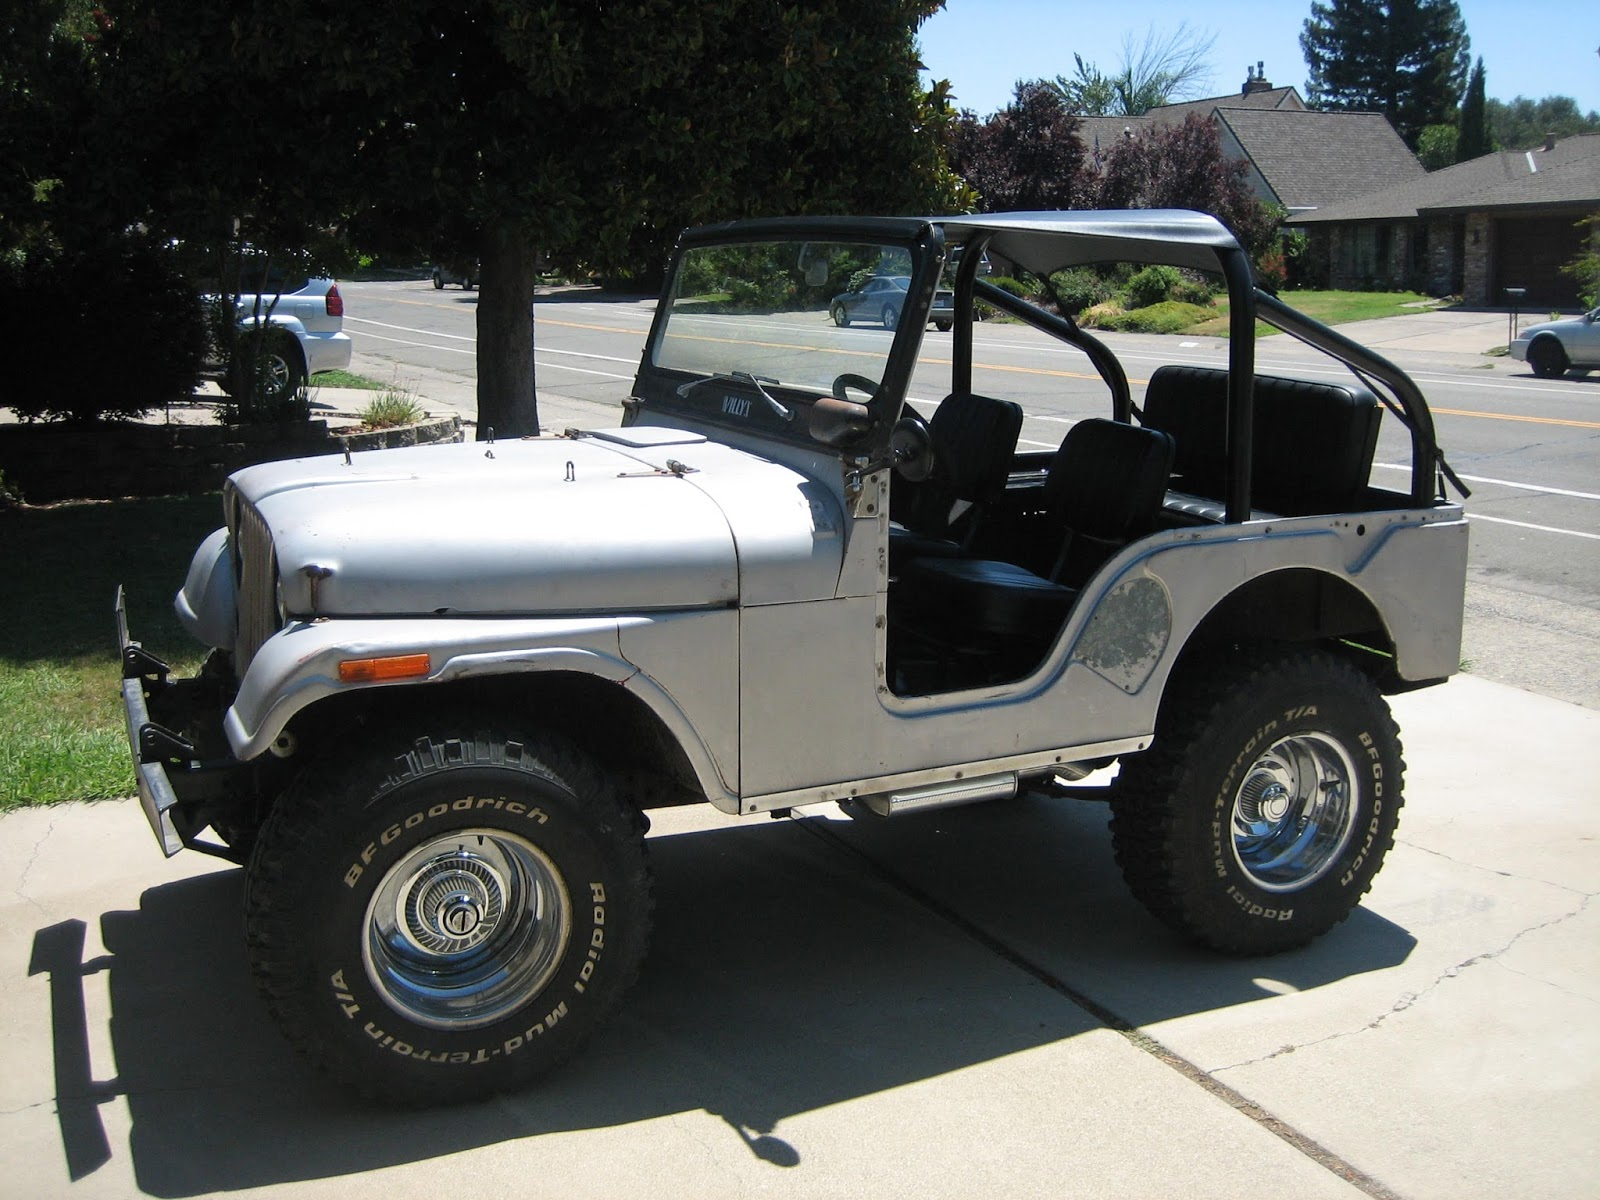 Eric's Garage: 1955 Willys M38A1 the miliary spec CJ5 Jeep